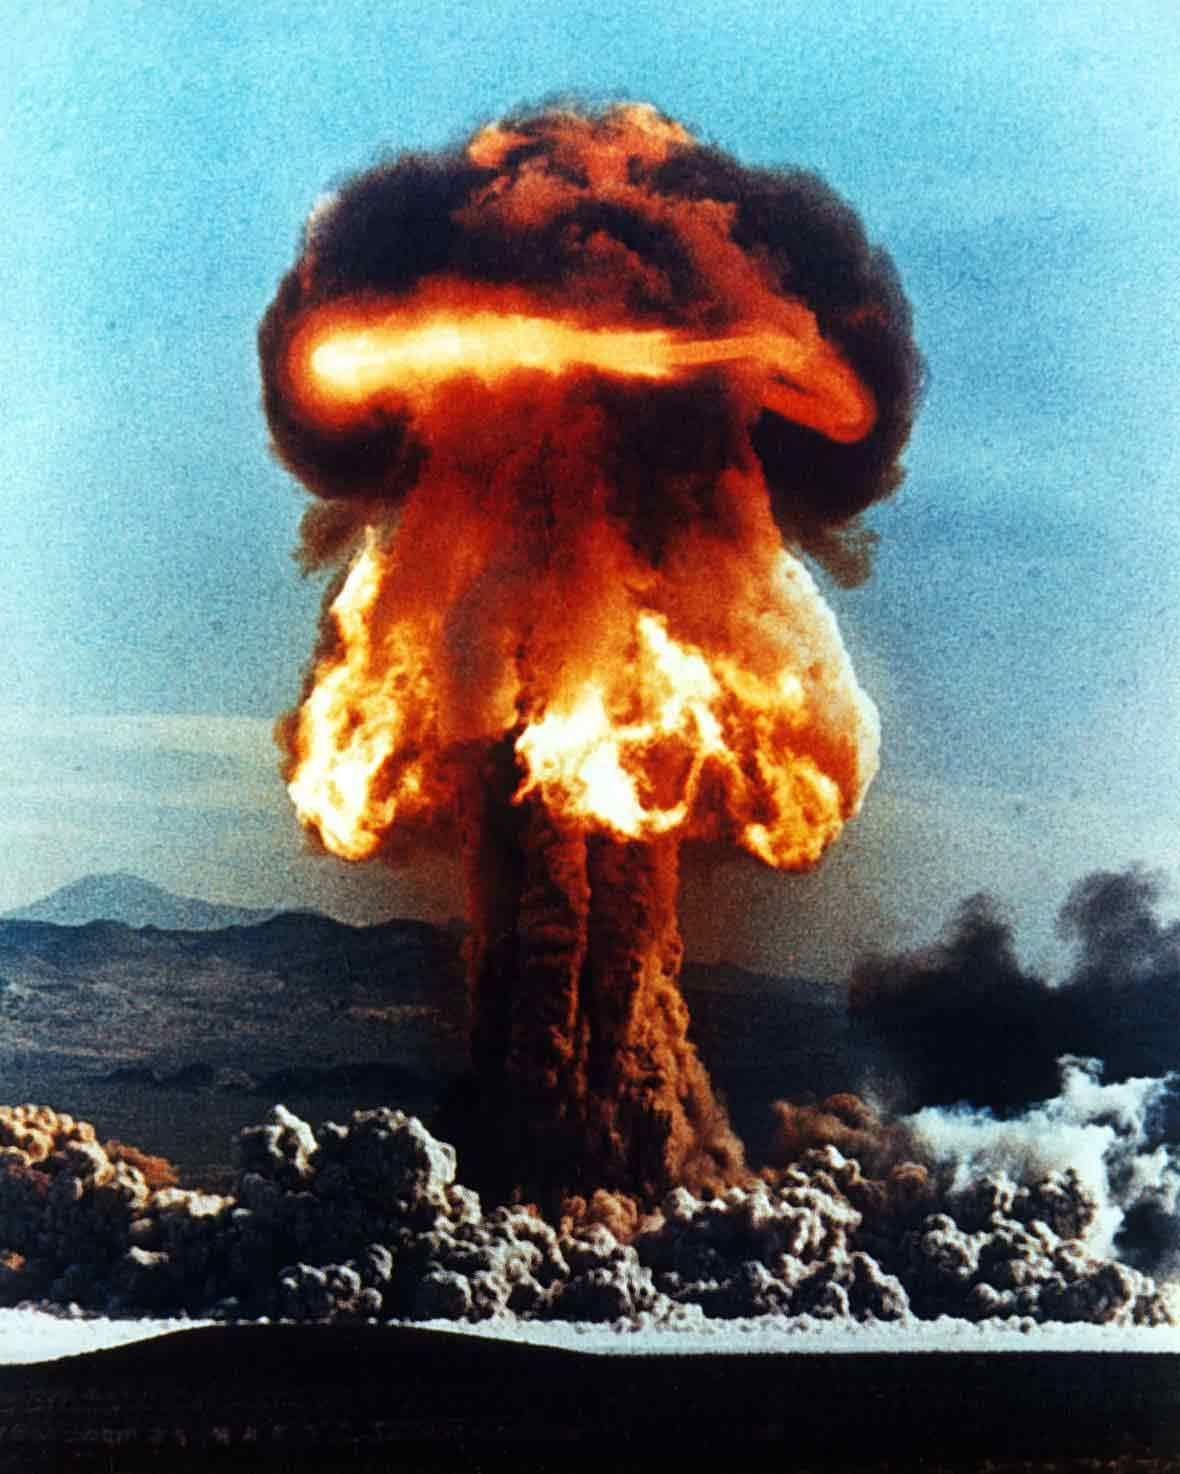 Doomsday Preparation Stockpile Canned Food Atomic Bomb Explosion Nuclear Bomb Atomic Bomb